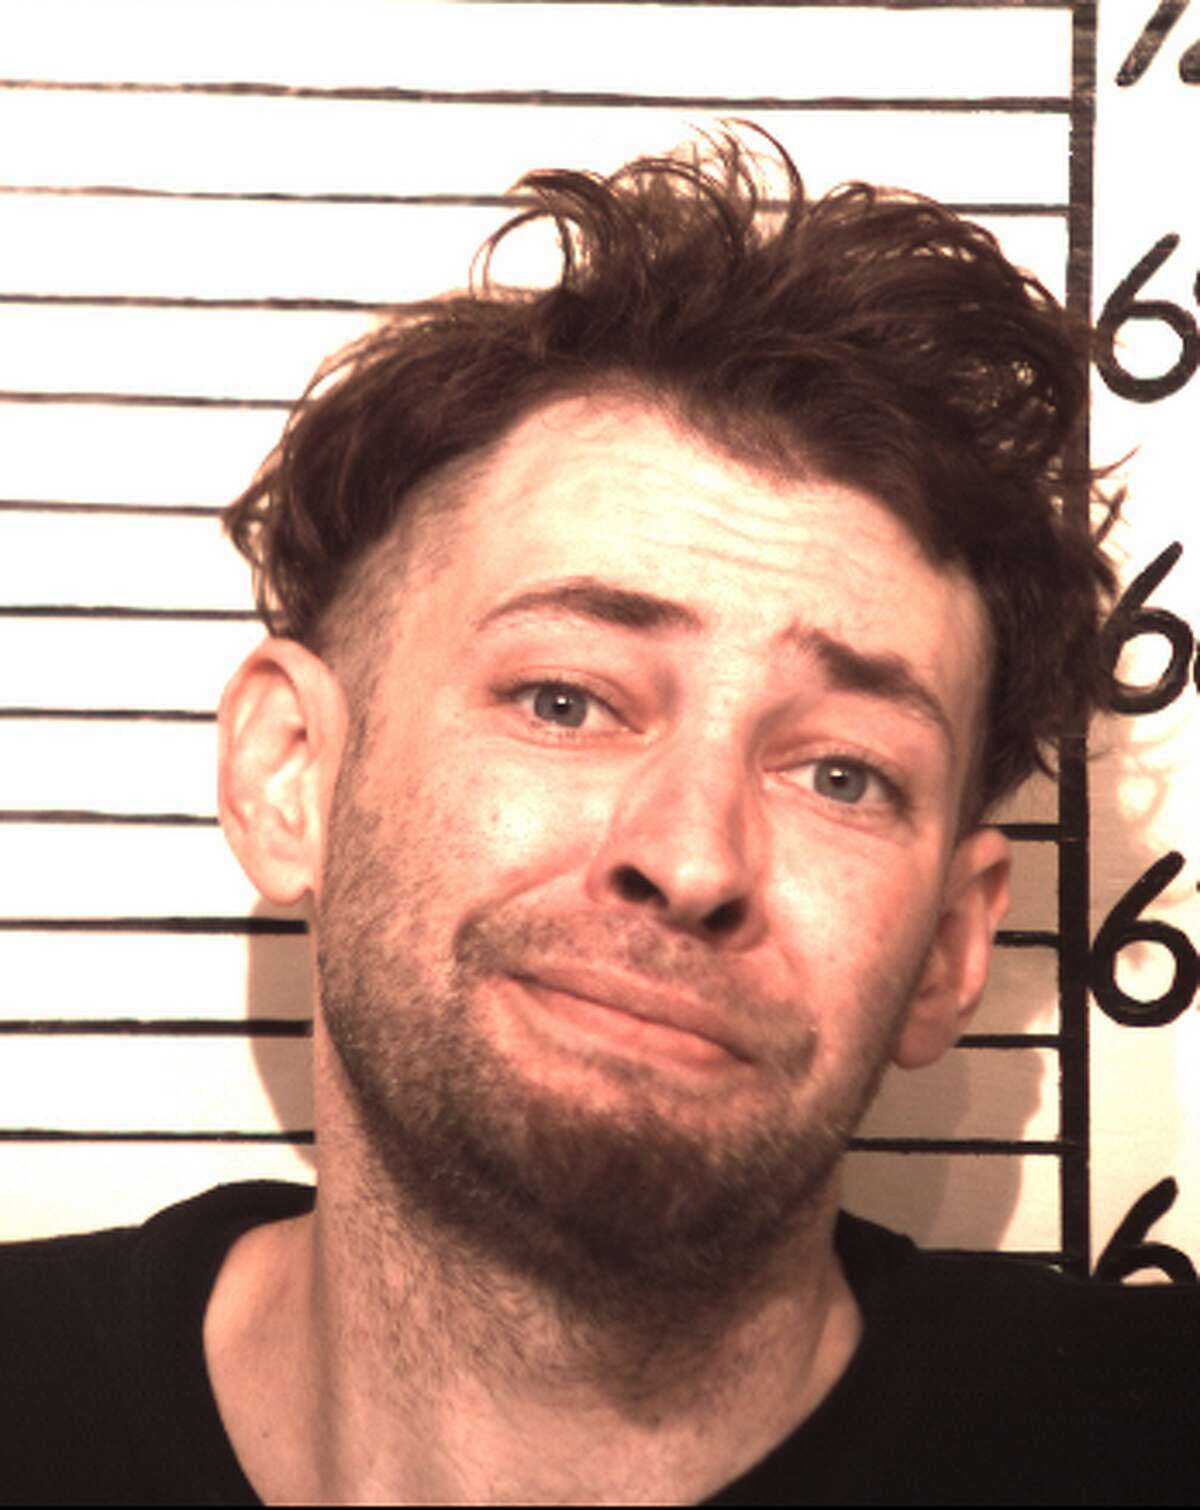 Richard Towne is wanted on charges of attempted capital murder and aggravated assault with a deadly weapon.